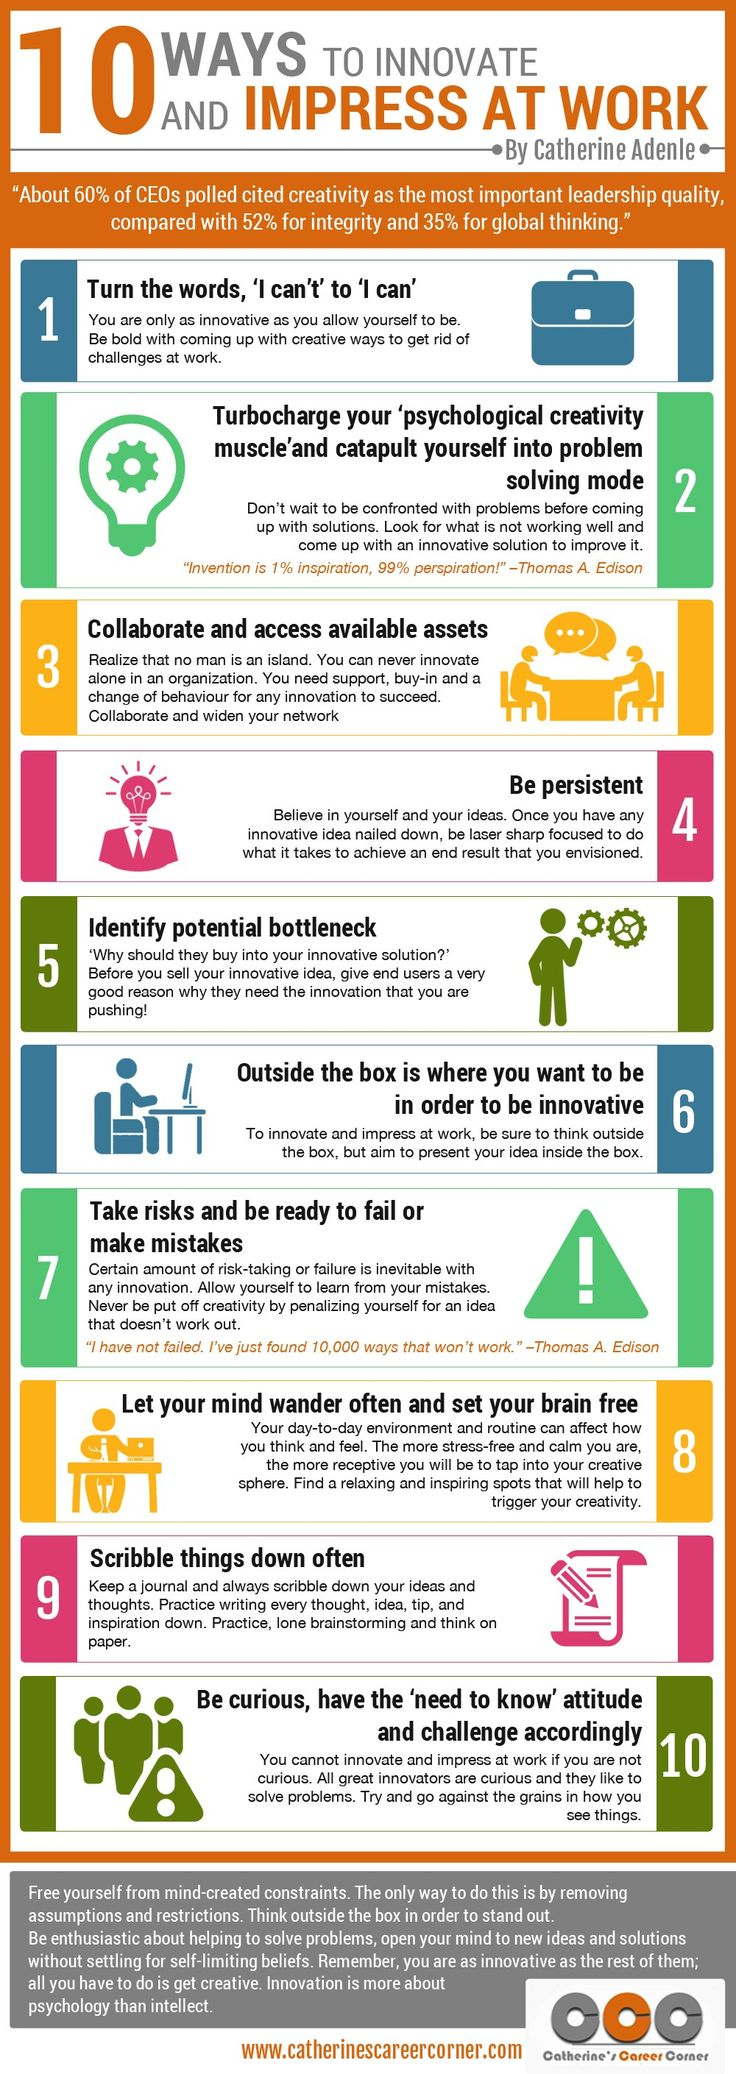 10 Ways To Innovate And Impress At Work (Infographic